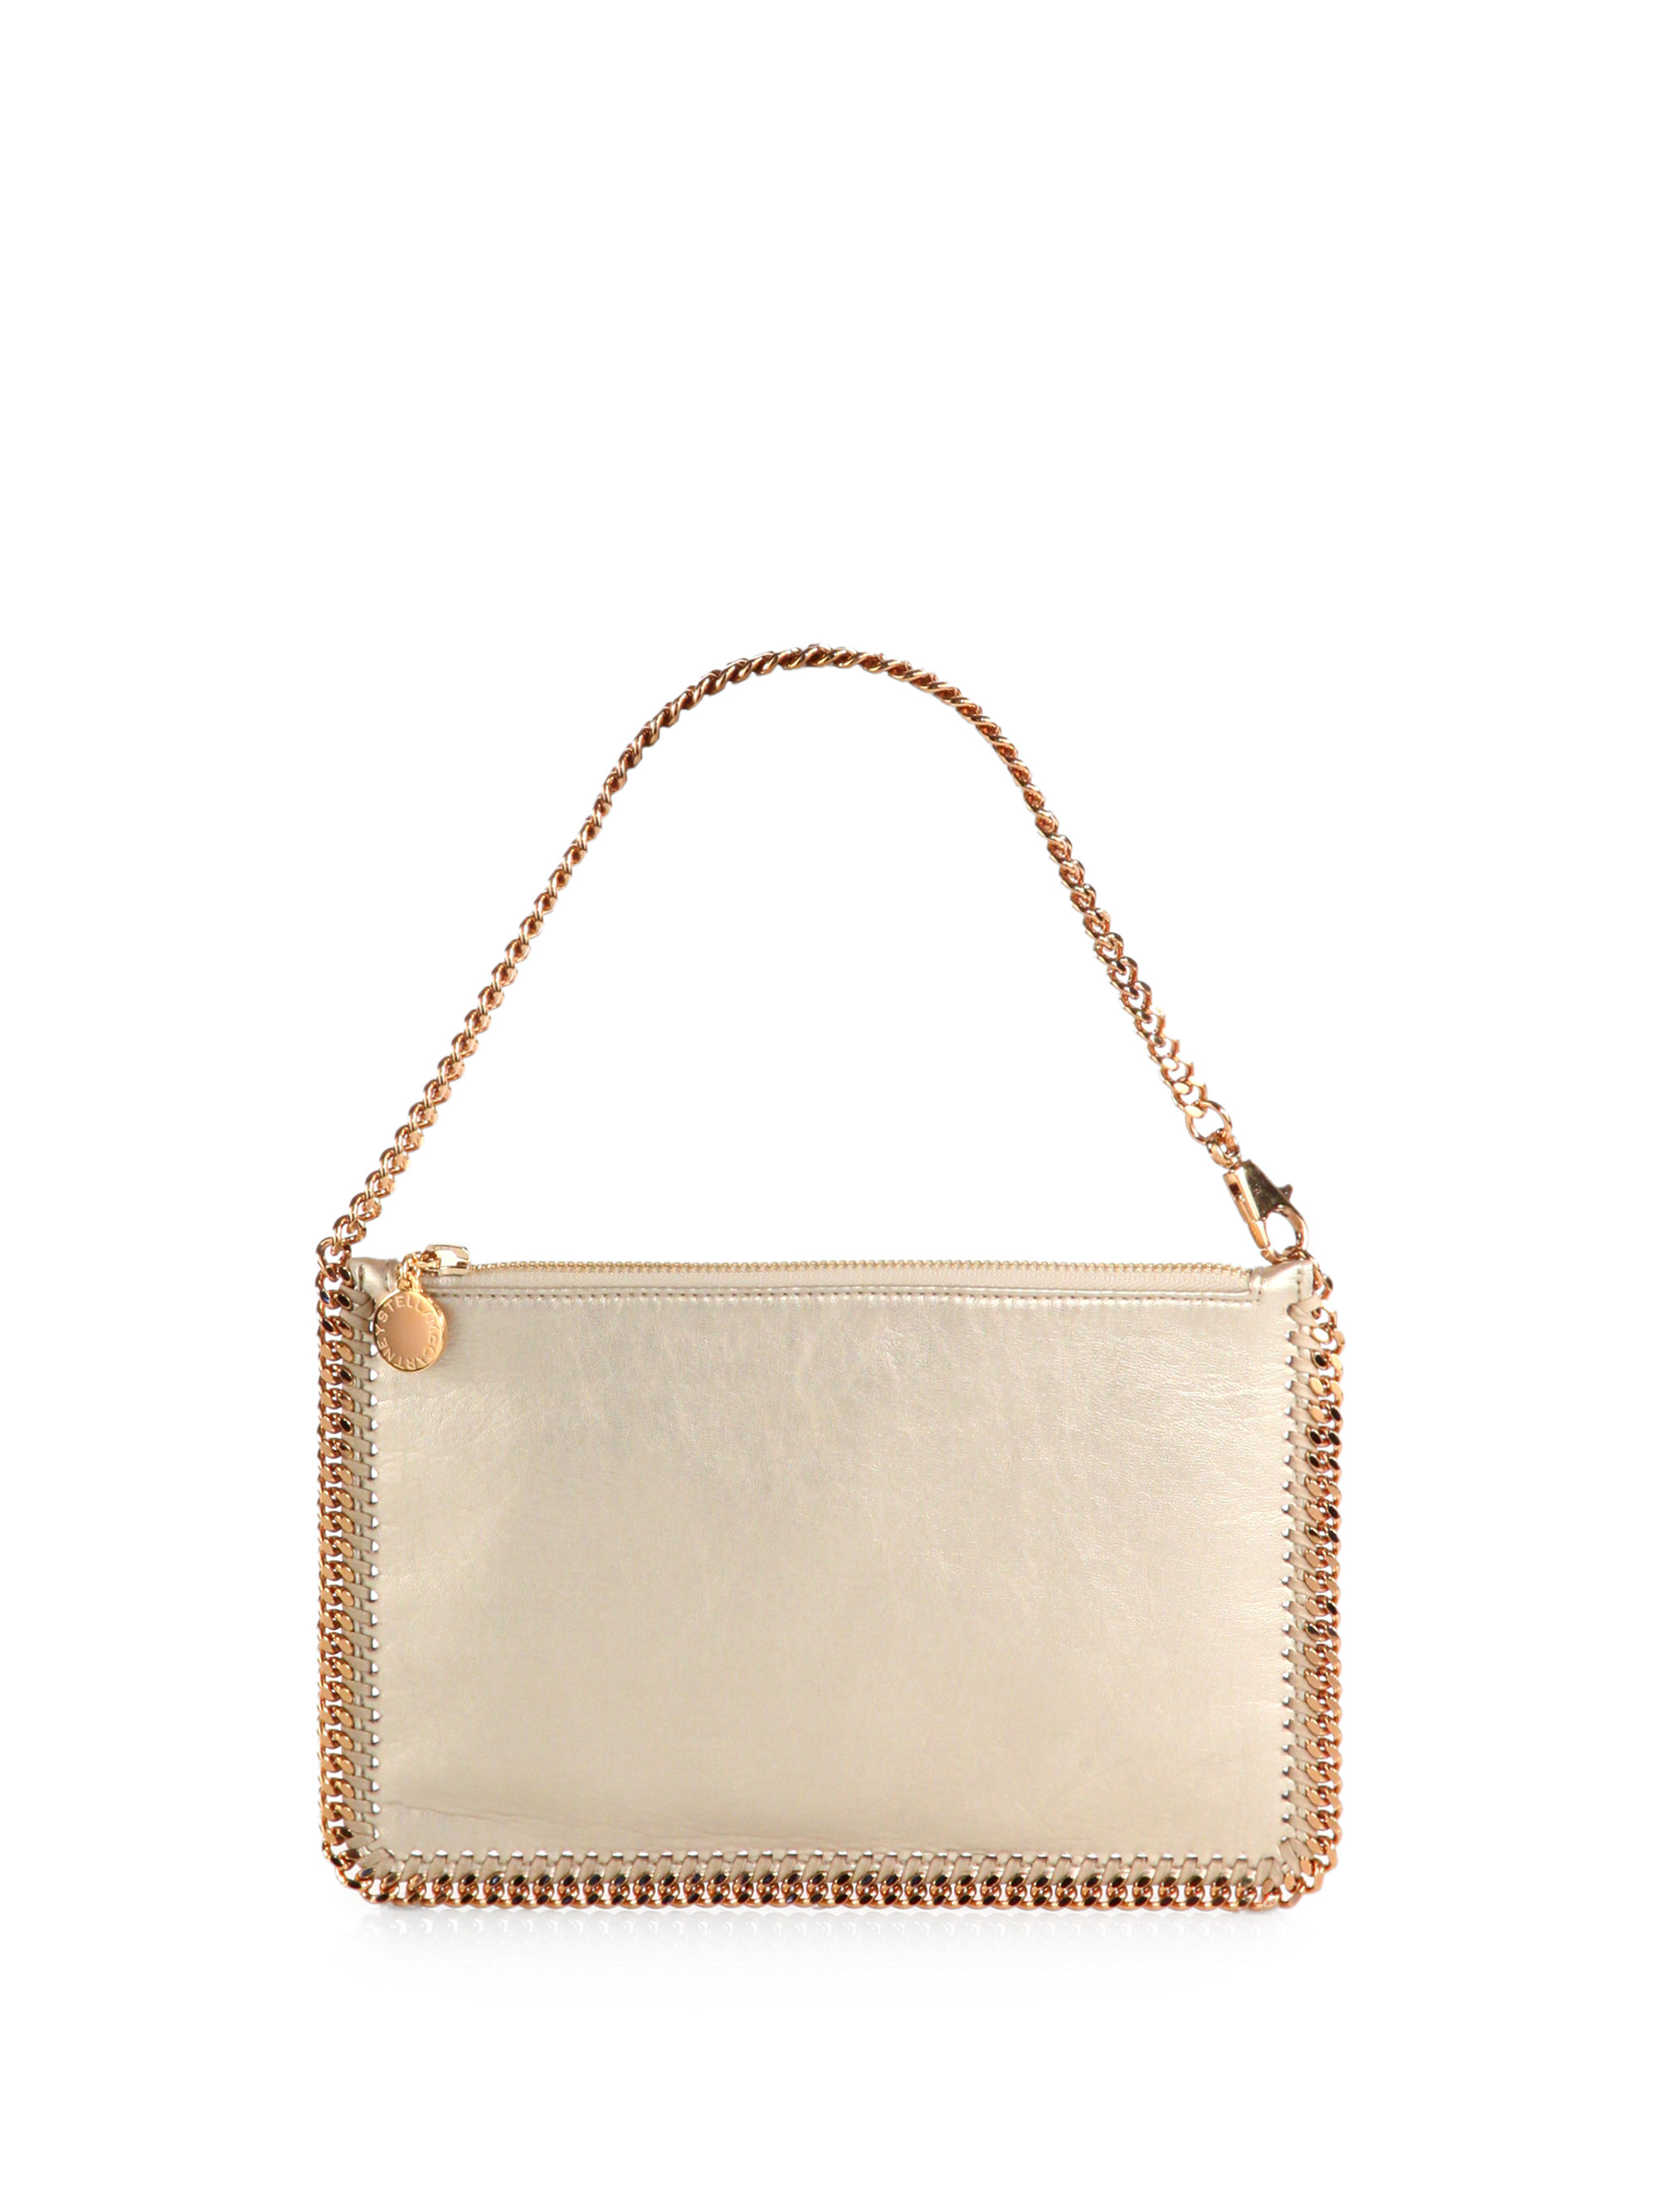 9e3dc74179 Lyst - Stella McCartney Falabella Metallic Convertible Clutch in ...